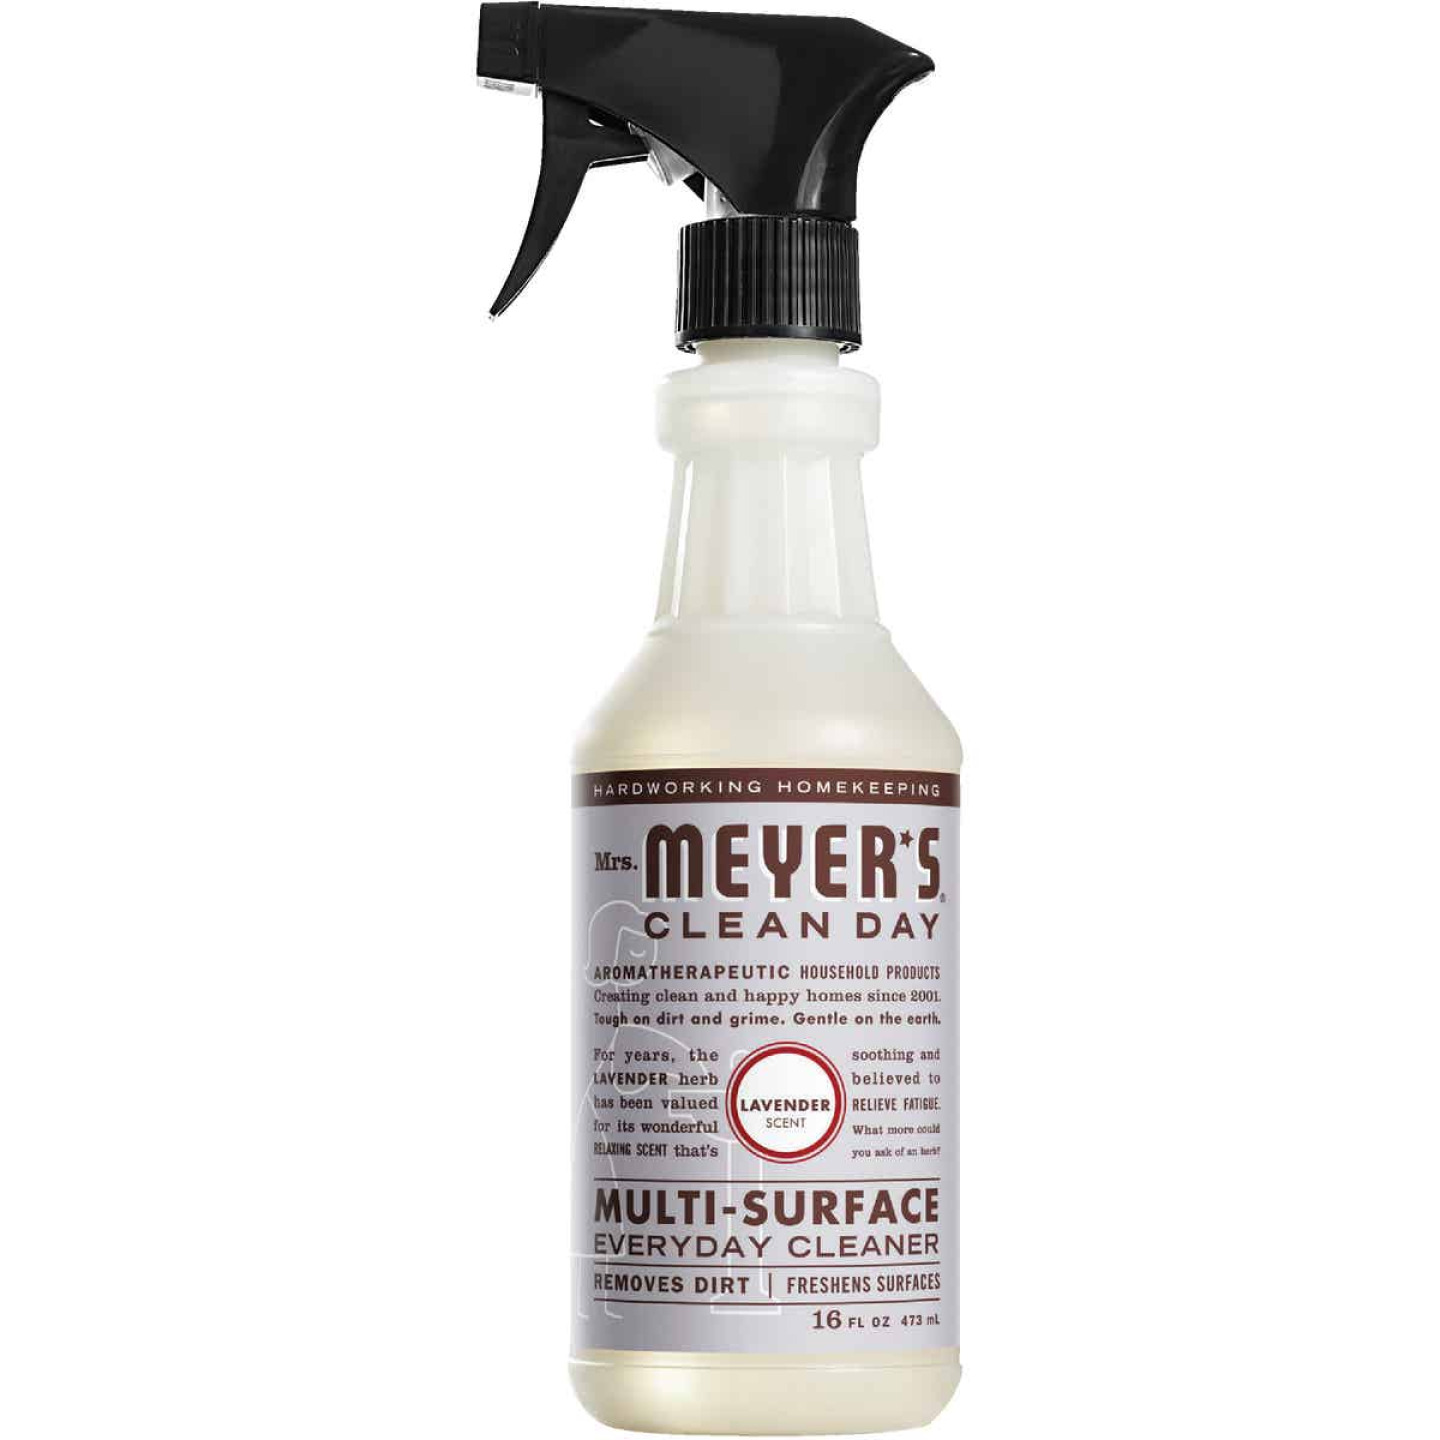 Mrs. Meyer's Clean Day 16 Oz. Lavender Multi-Surface Everyday Cleaner Image 1